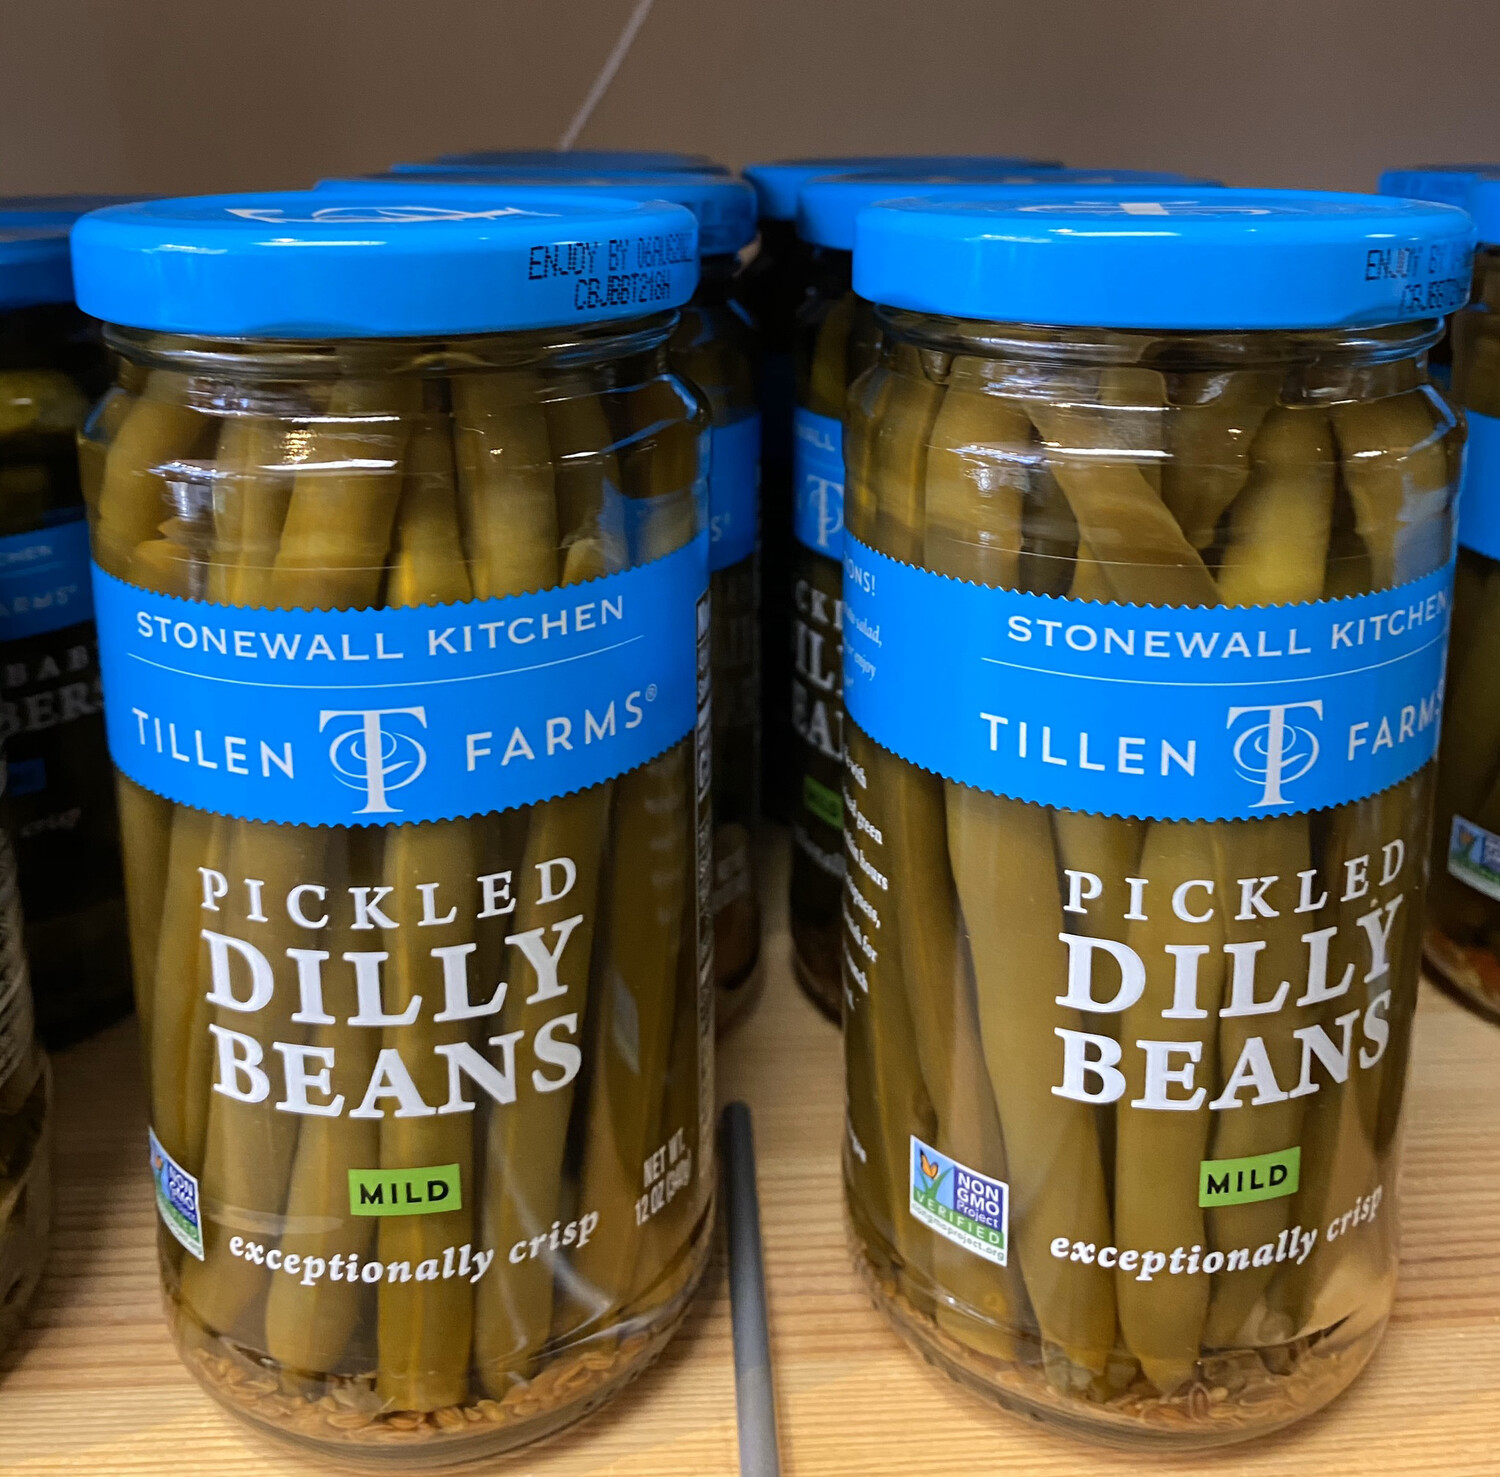 T.F. Pickled Dilly Beans. Mild